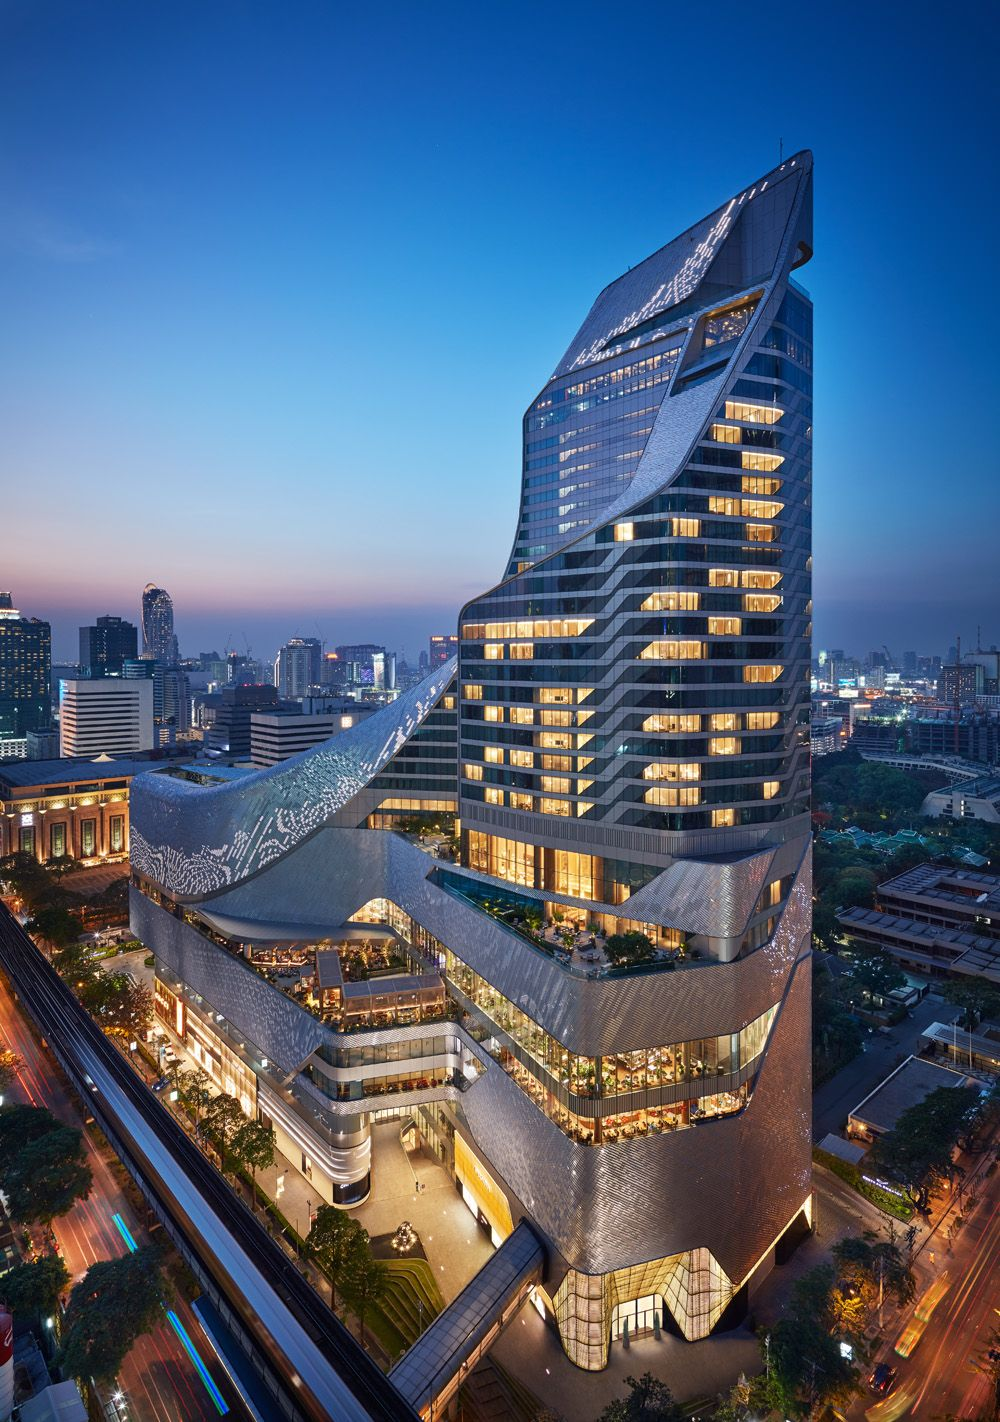 The architecture of Park Hyatt Bangkok and its adjoining mall Central Embassy were designed by AL_A